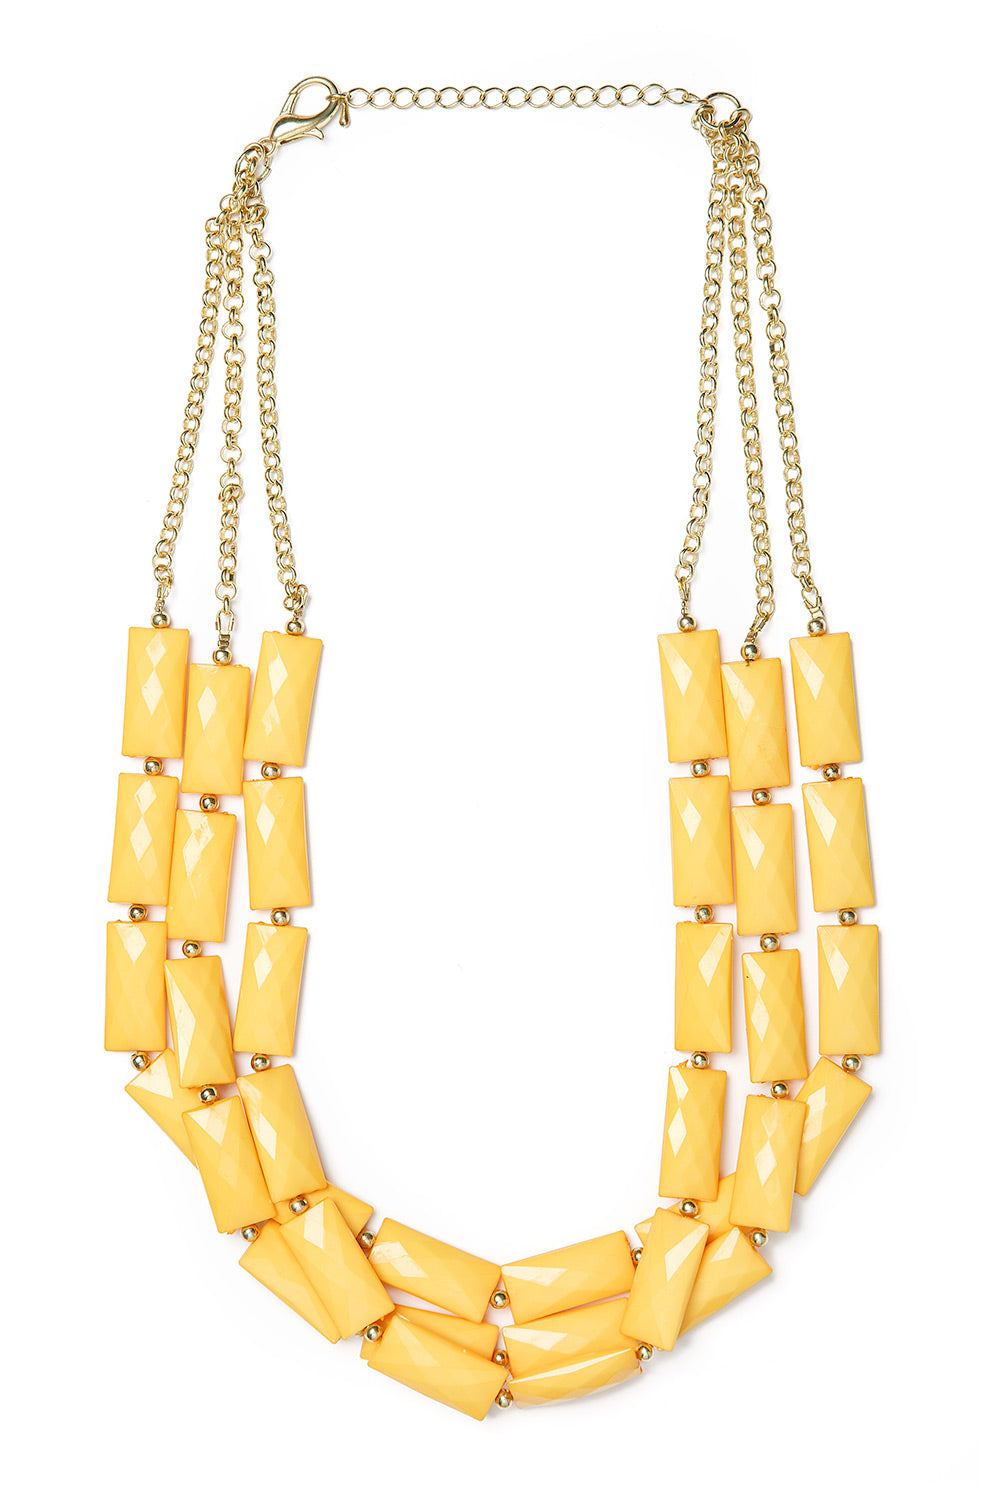 Type 3 Golden Blocks Necklace